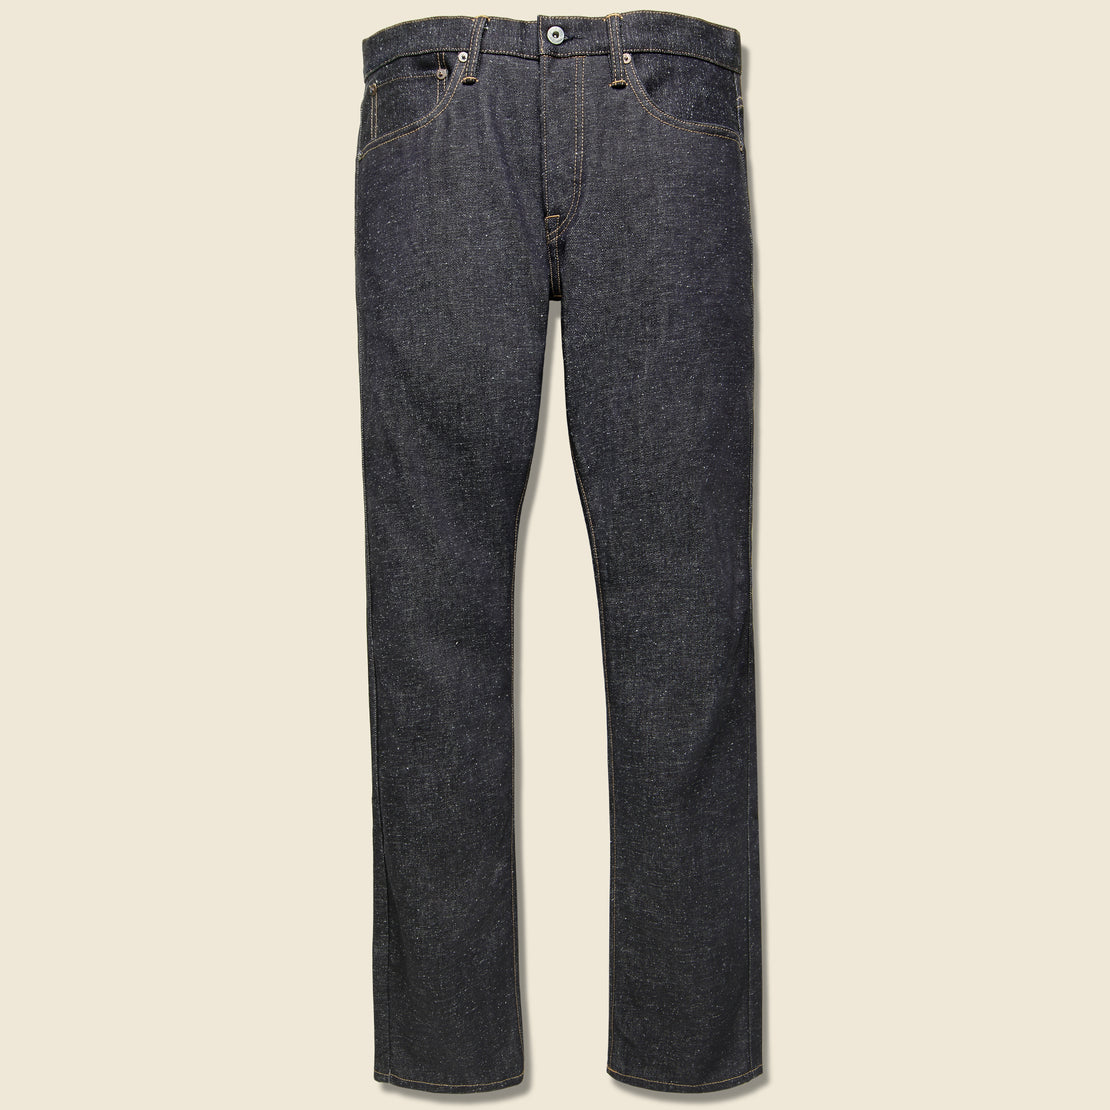 Rogue Territory Standard Issue 12oz - Indigo